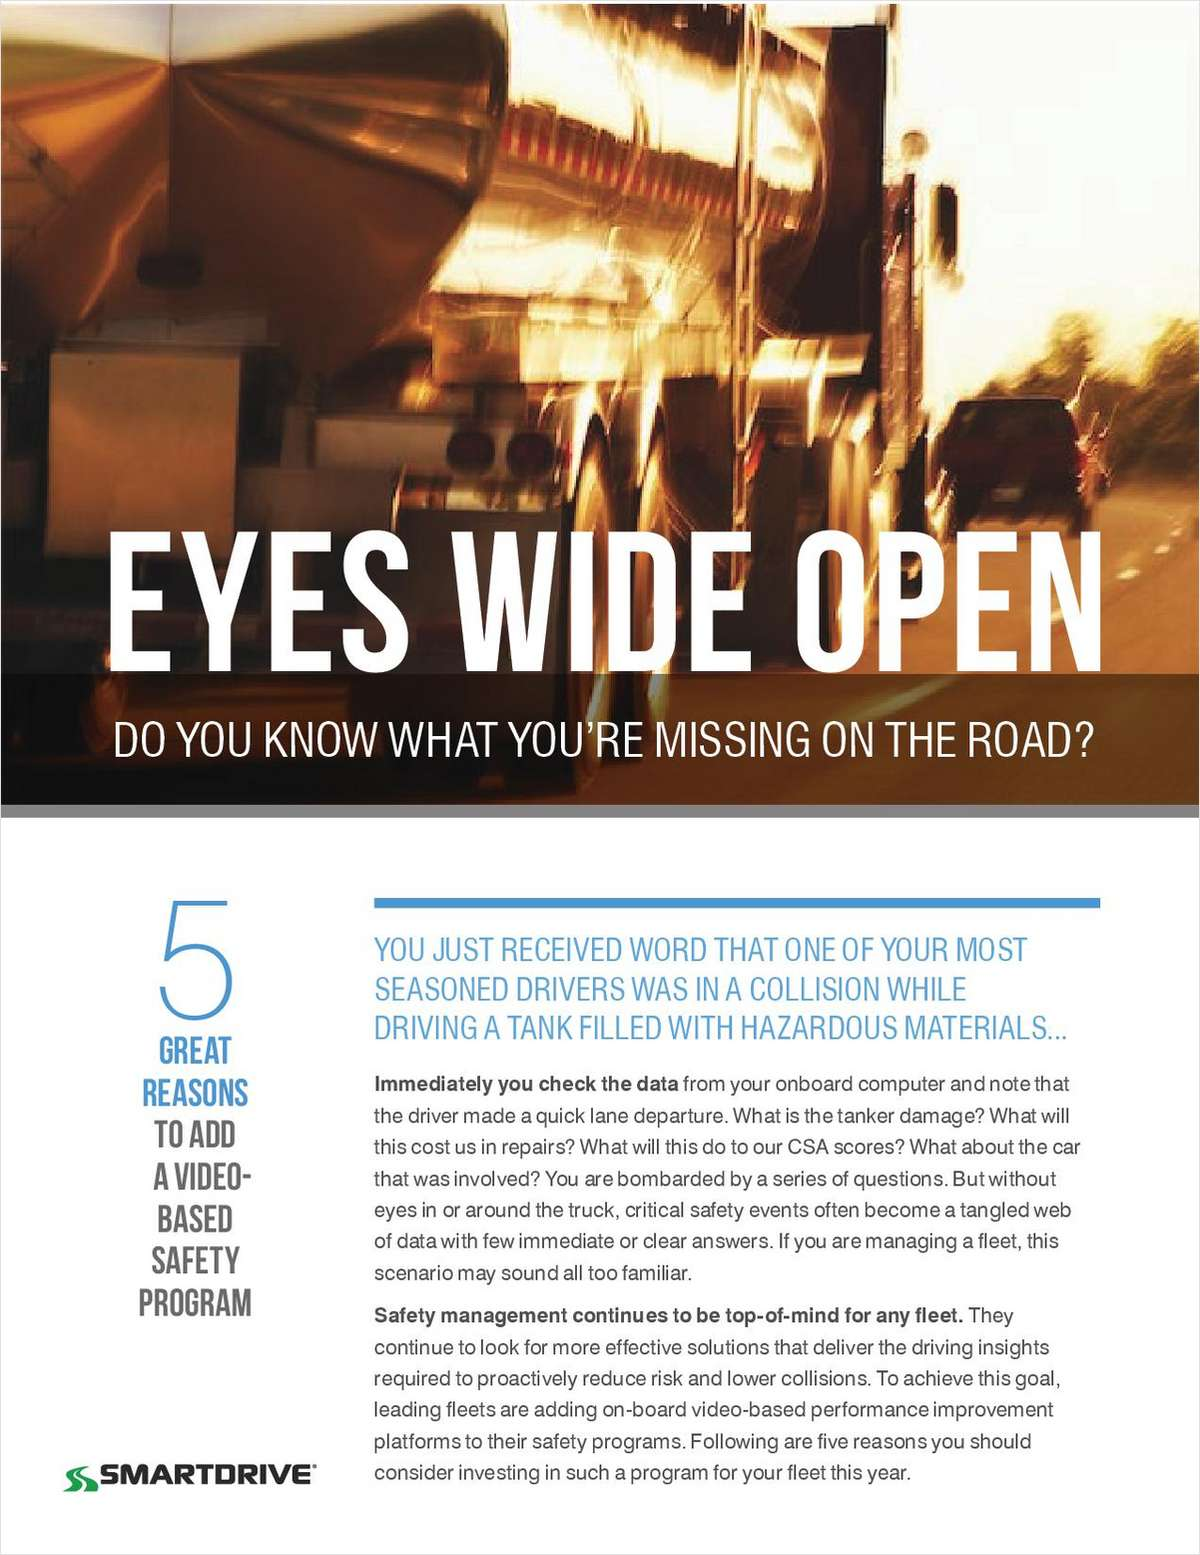 Eyes Wide Open - Do You Know What You're Missing On The Road?